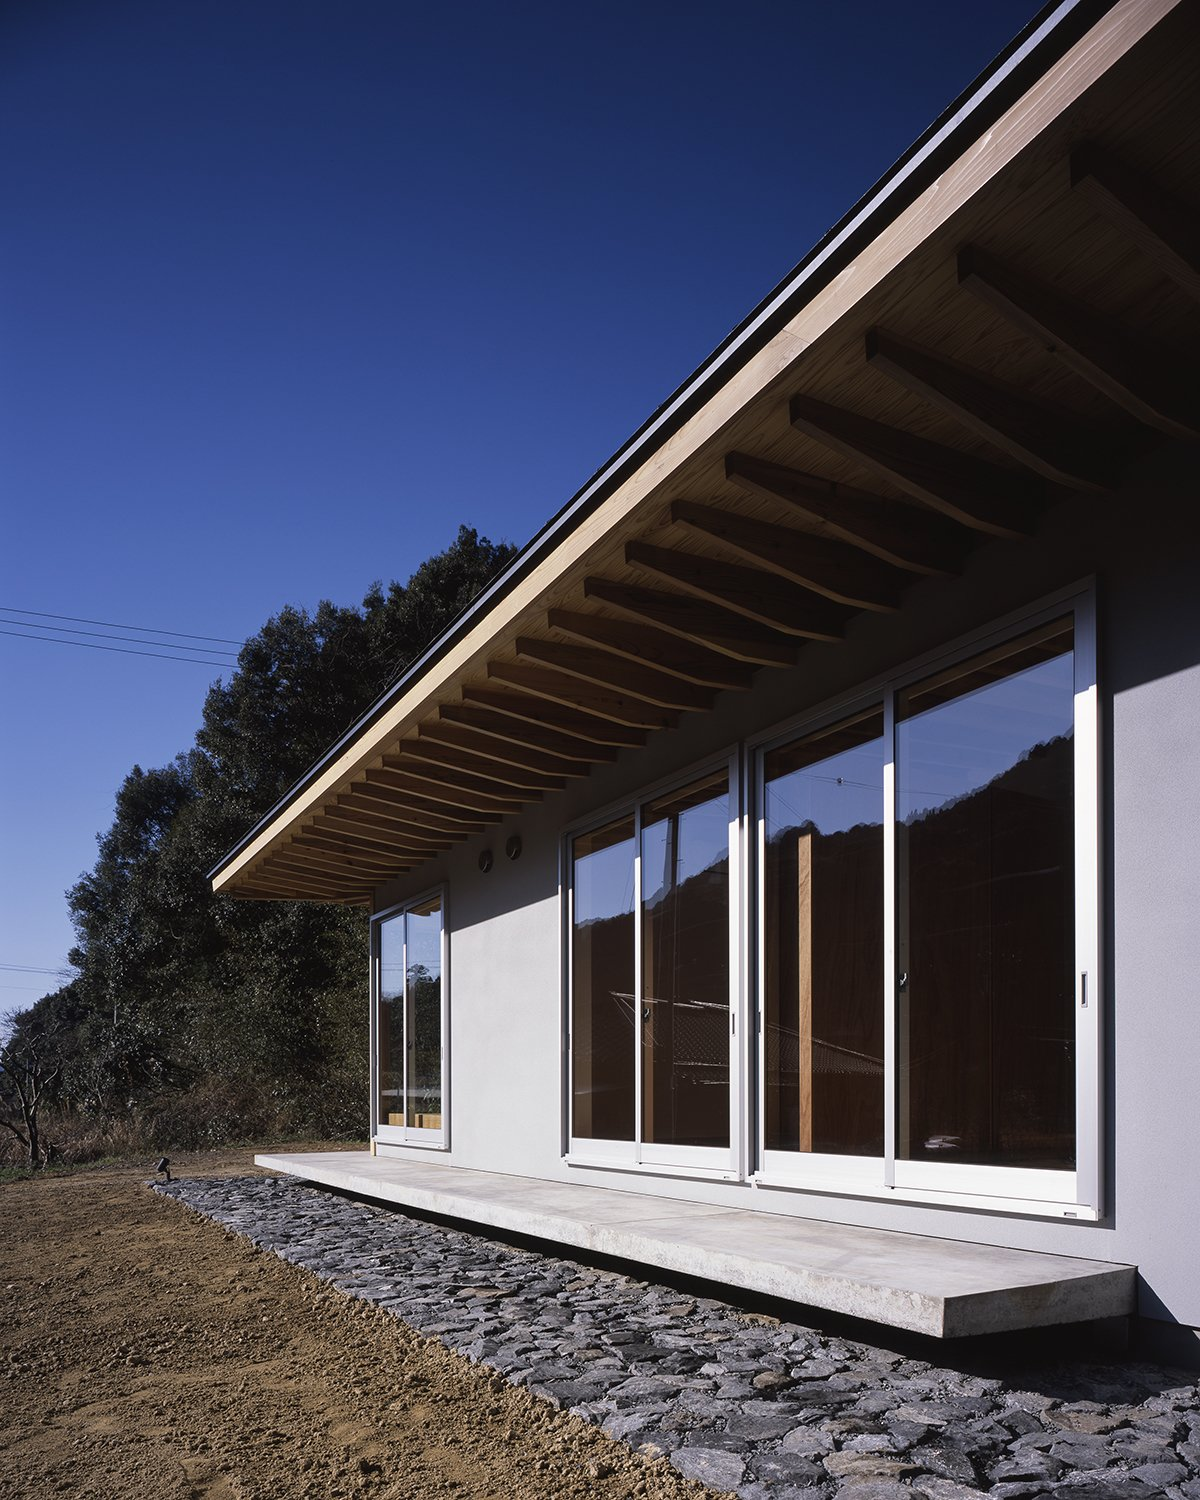 House in Yasunami by TENK - Photo 4 of 5